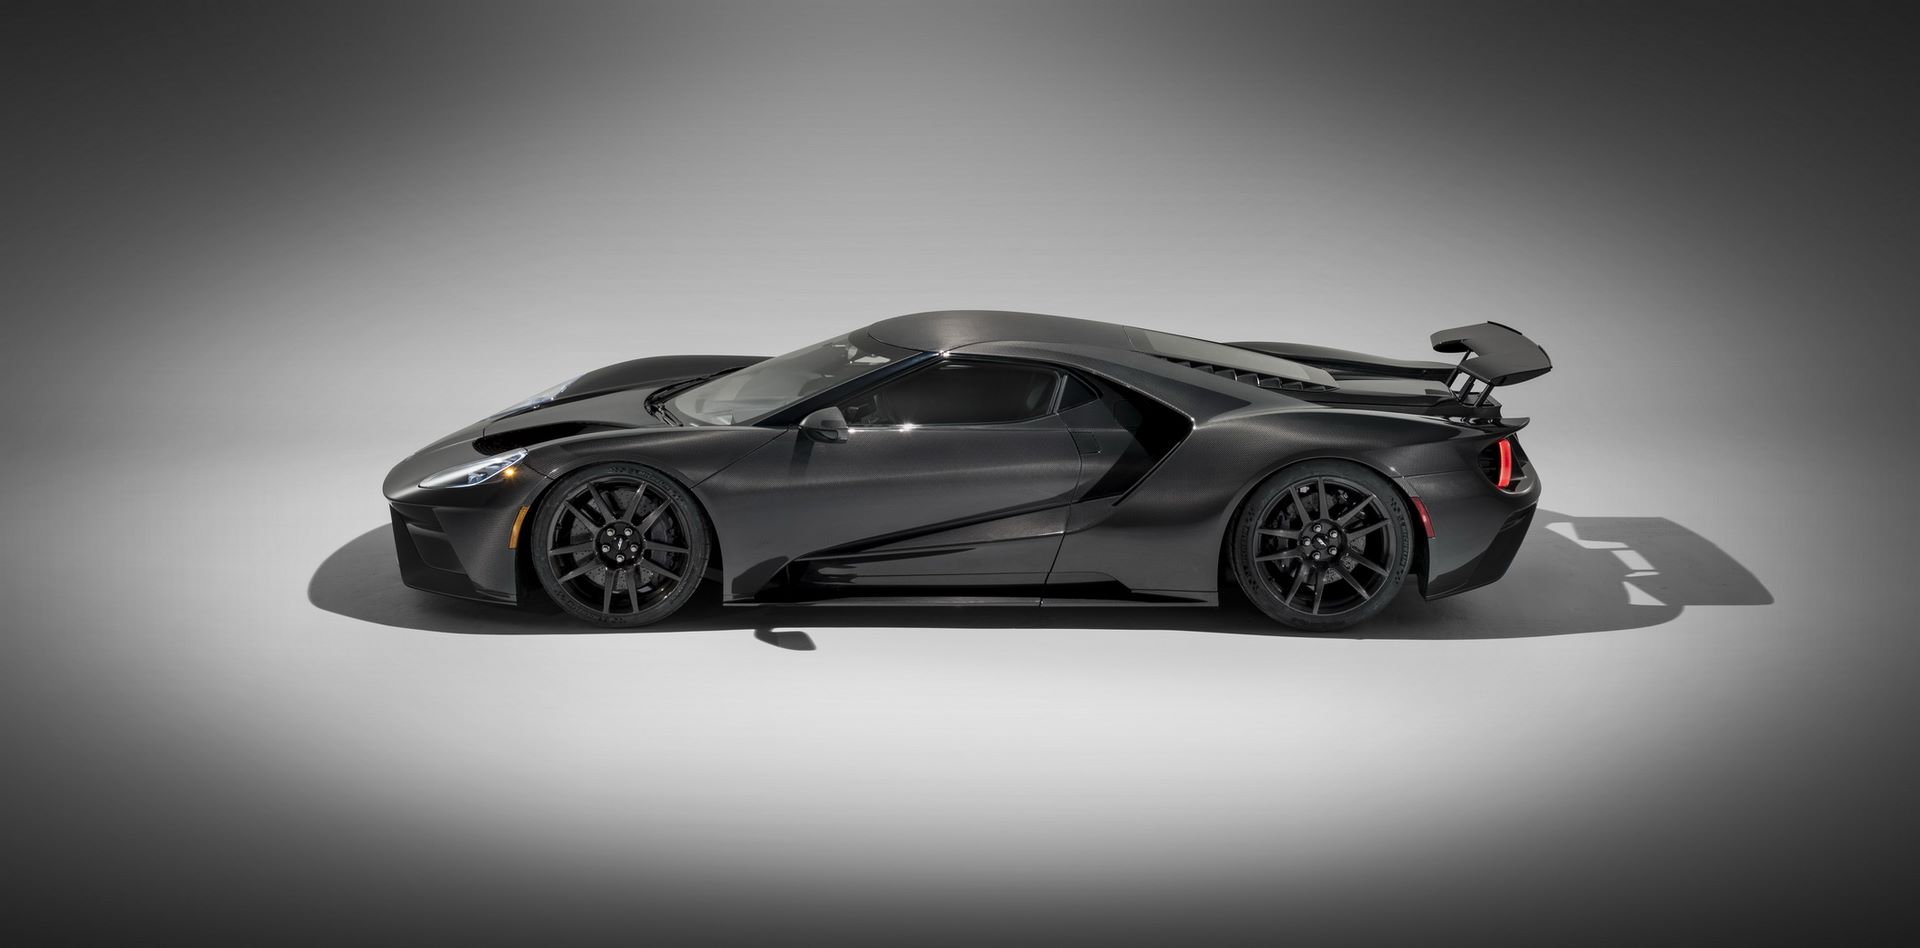 2020-ford-gt-liquid-carbon-edition-8